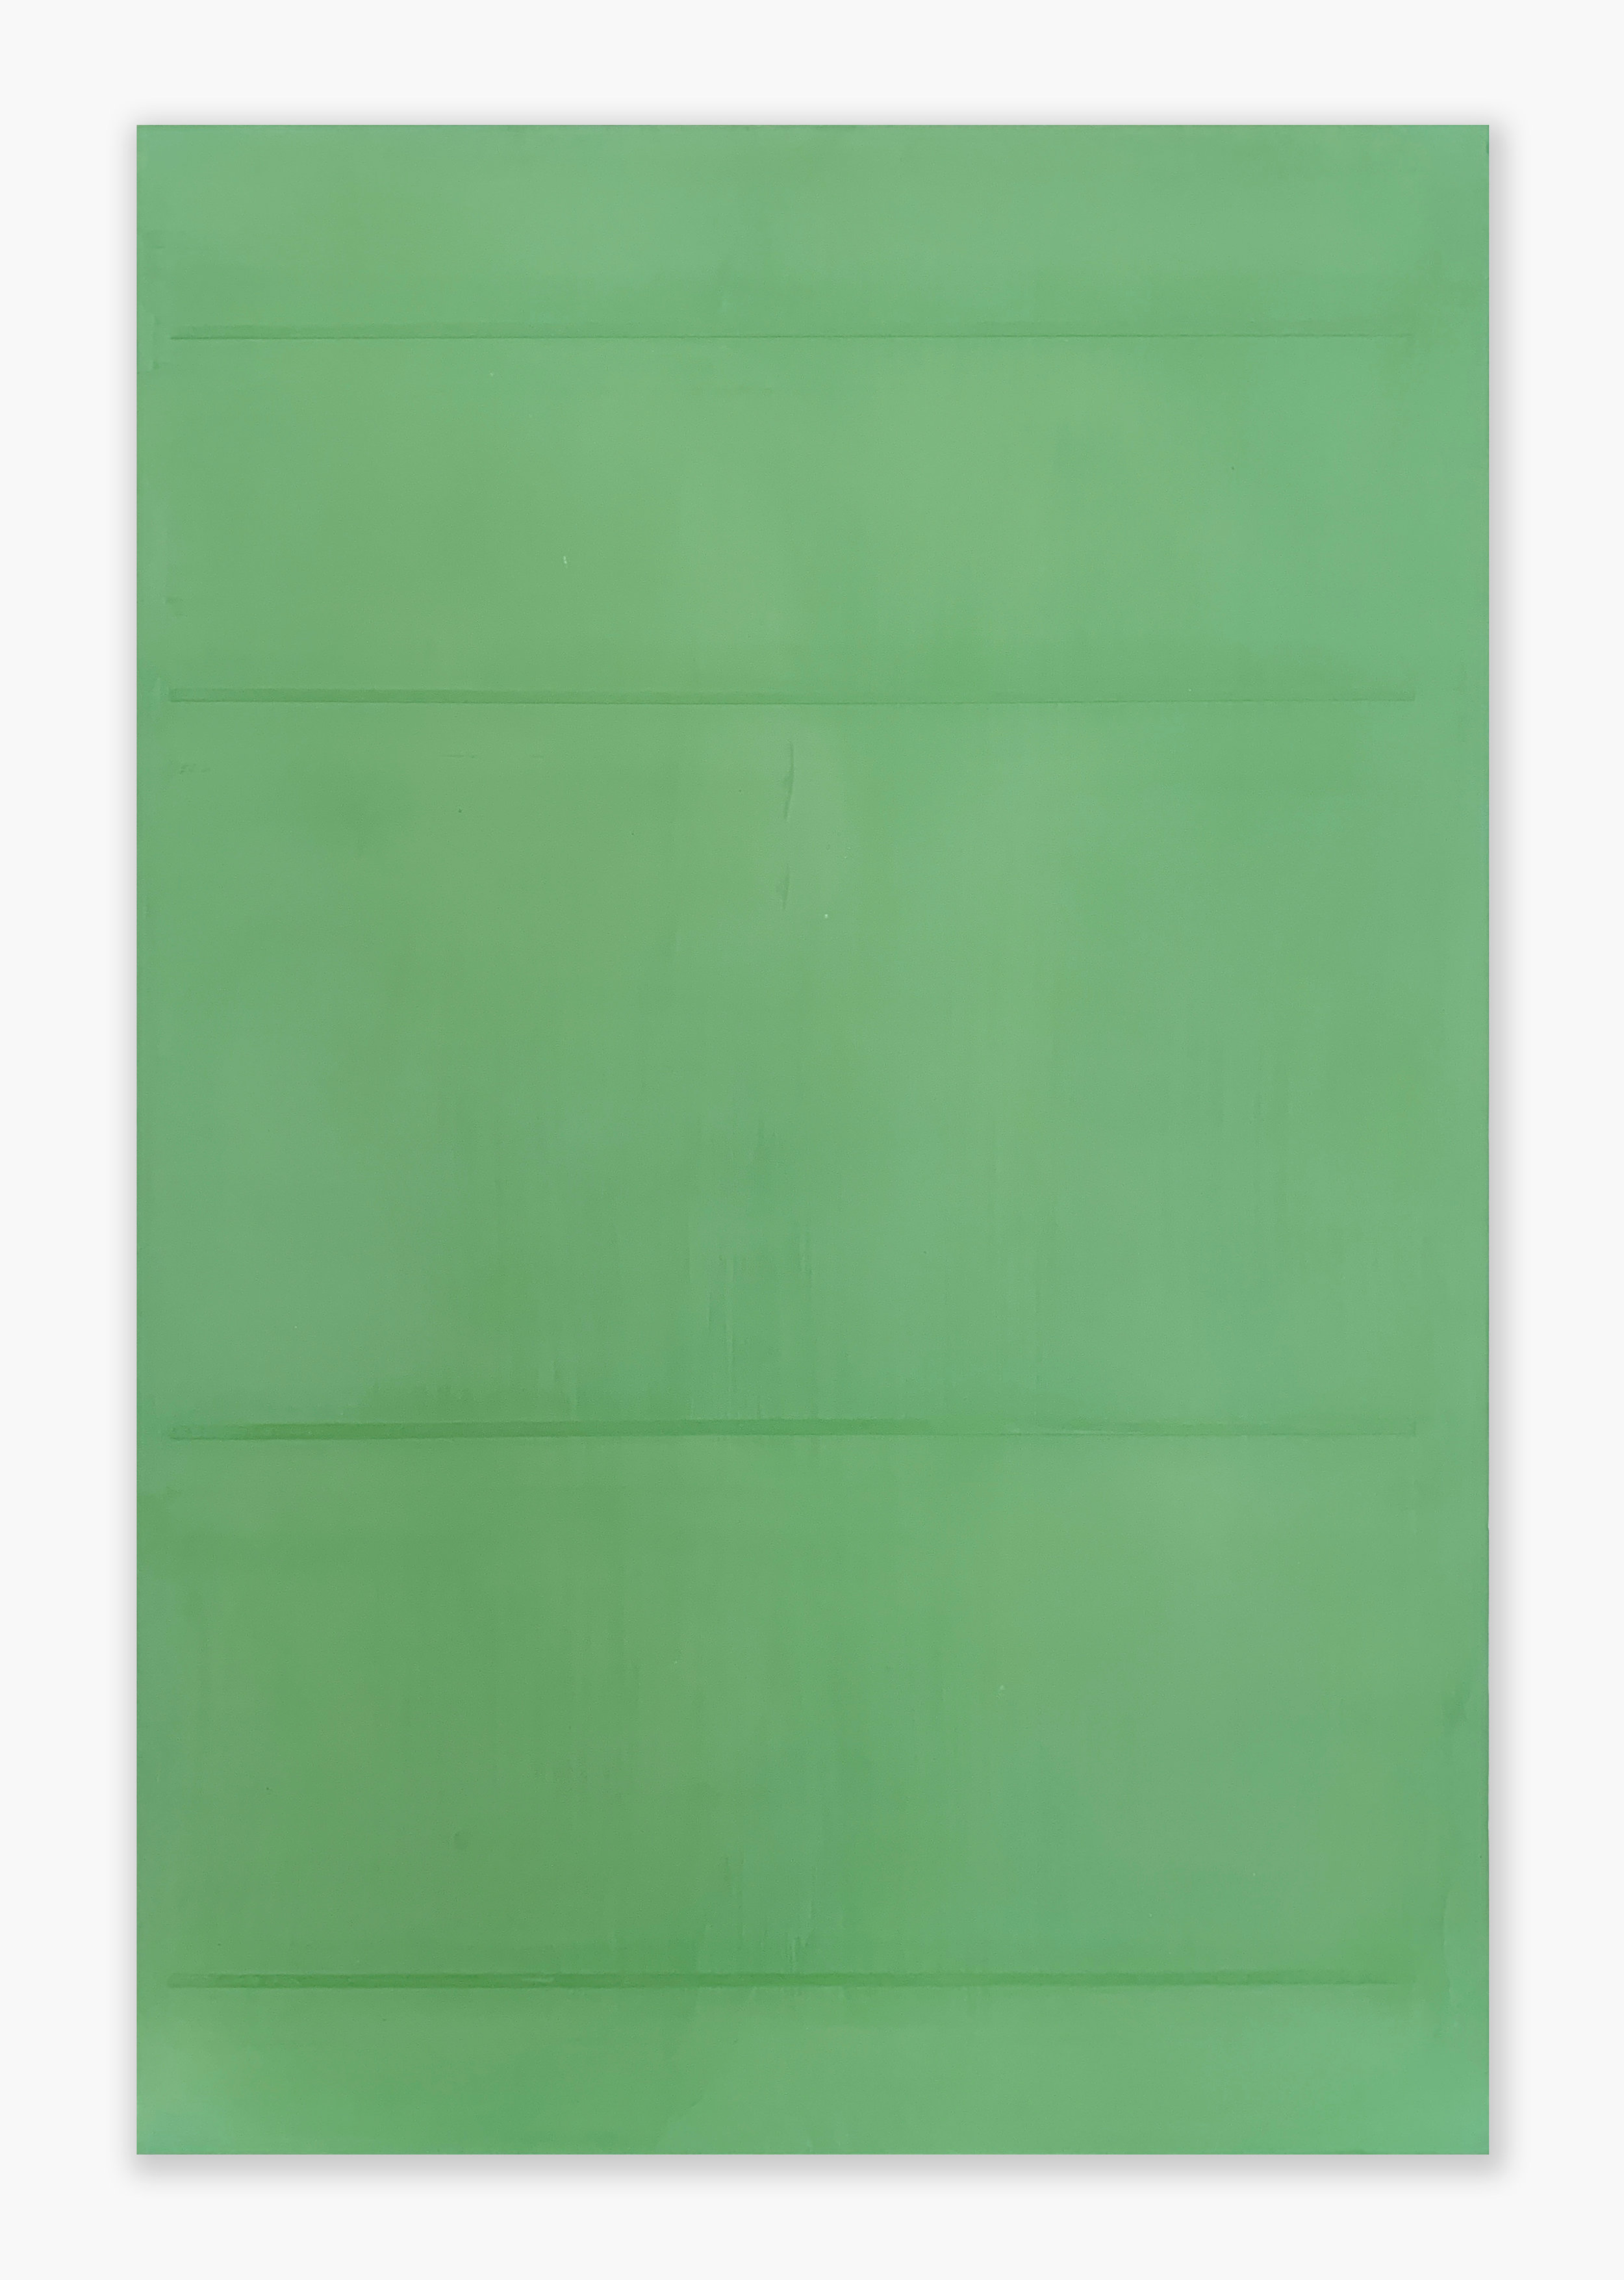 Lined Space Green